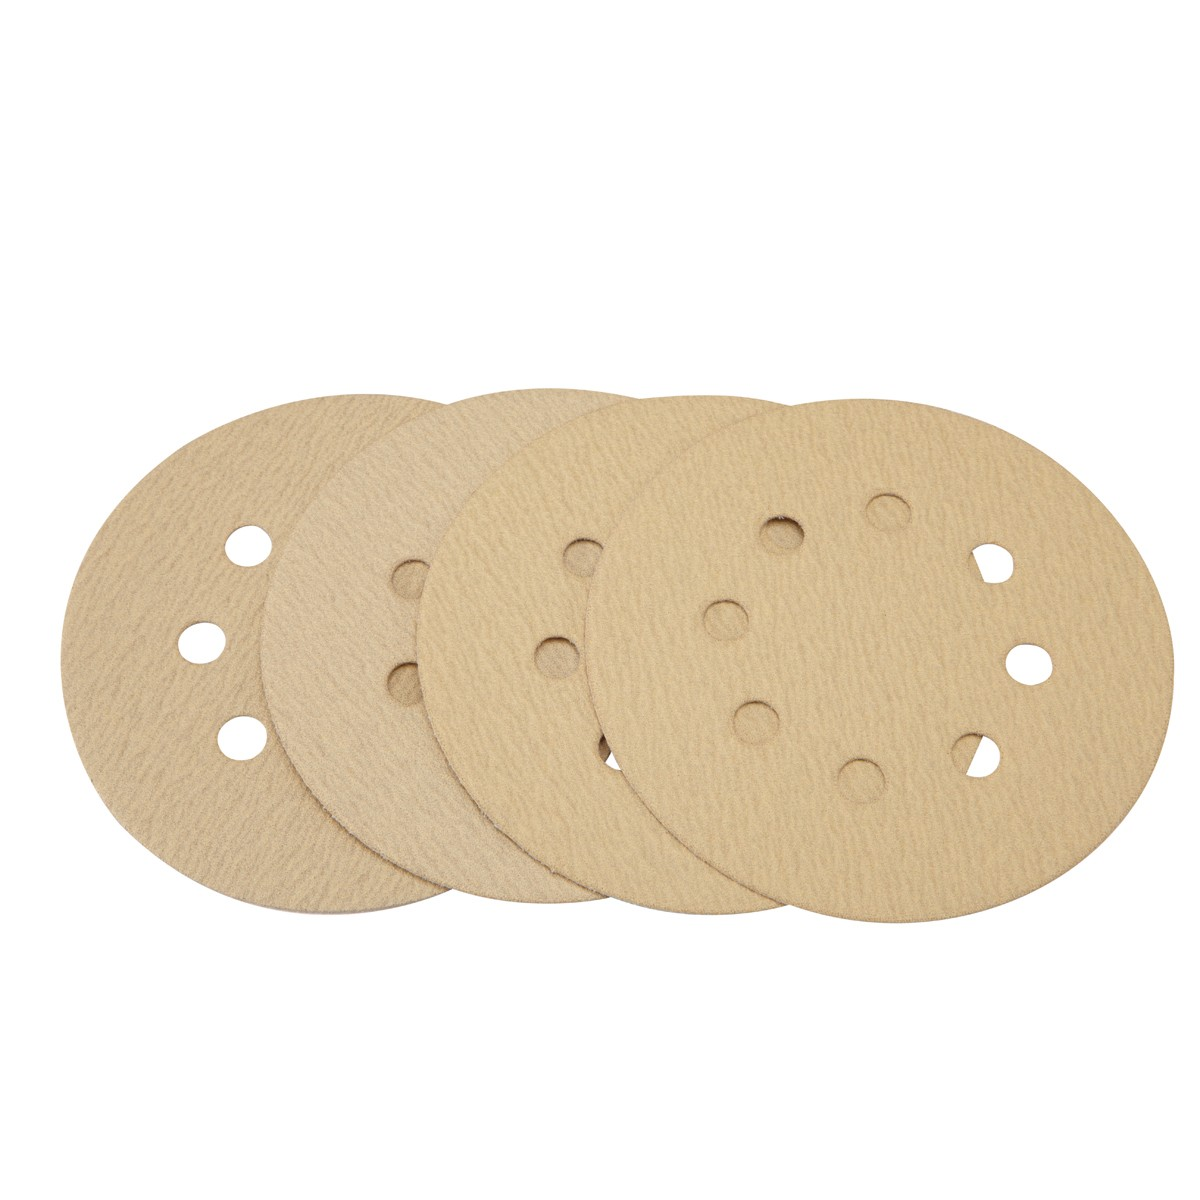 5 in. 150 Grit Hook and Loop Sanding Discs 4 Pc